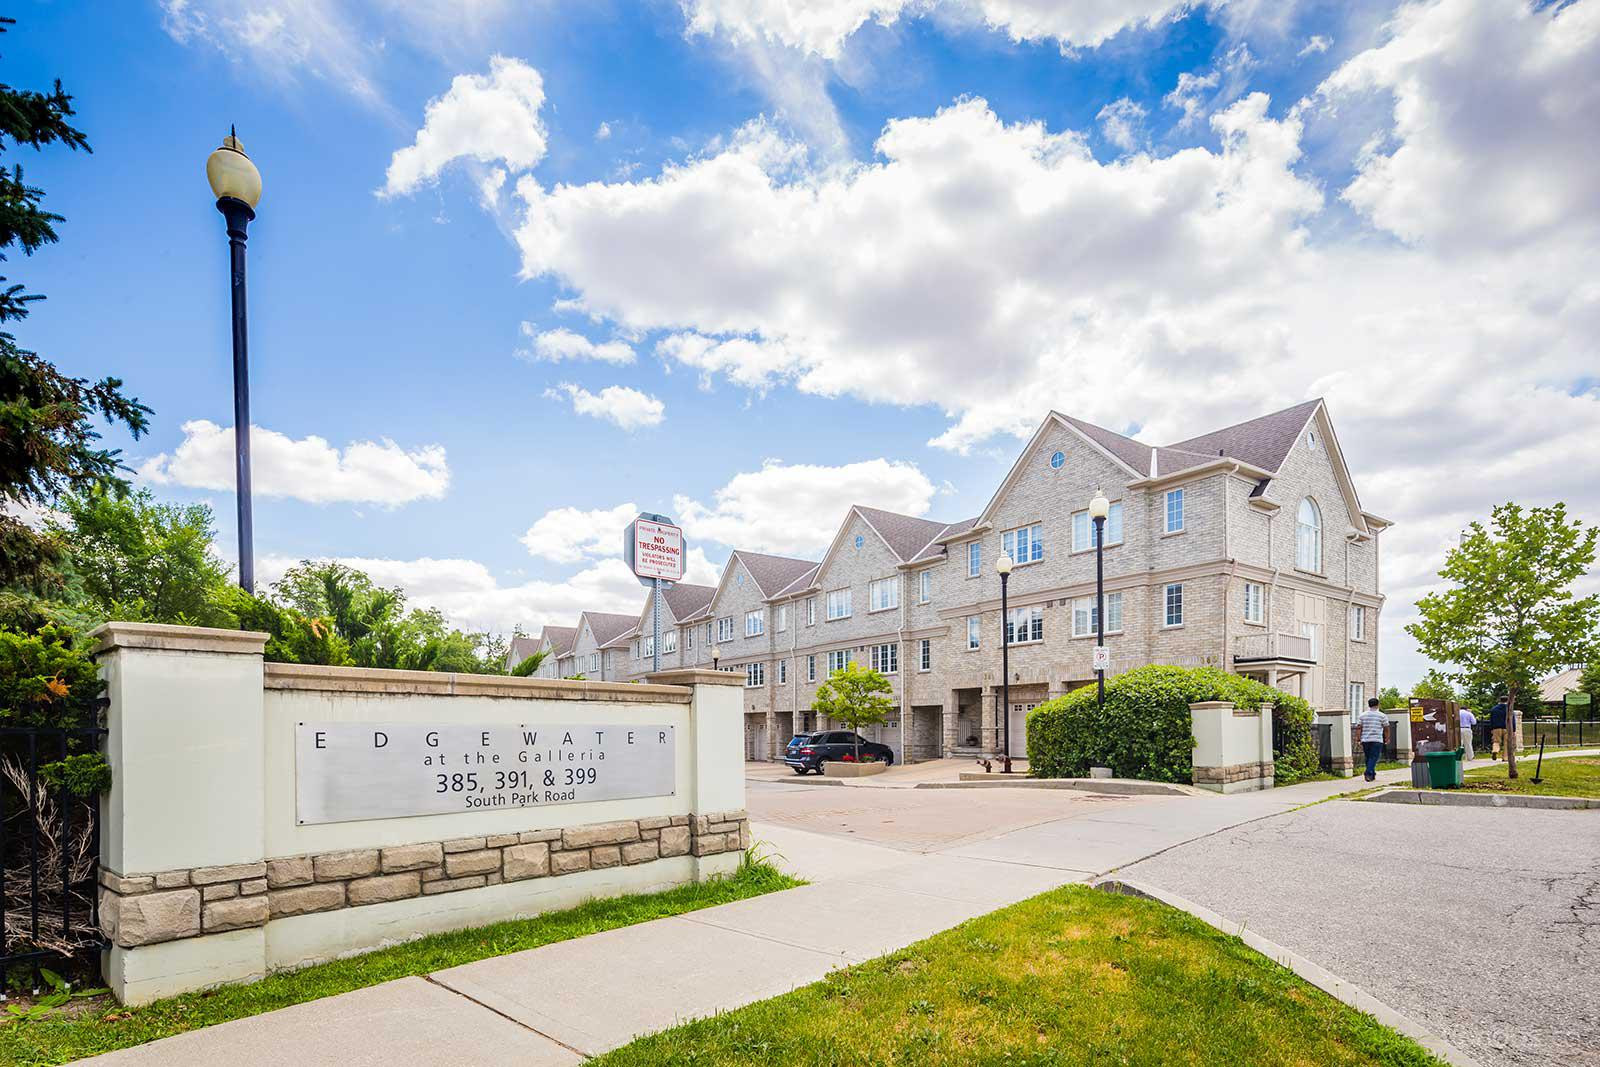 Edgewater at the Galleria at 399 South Park Rd, Markham 1